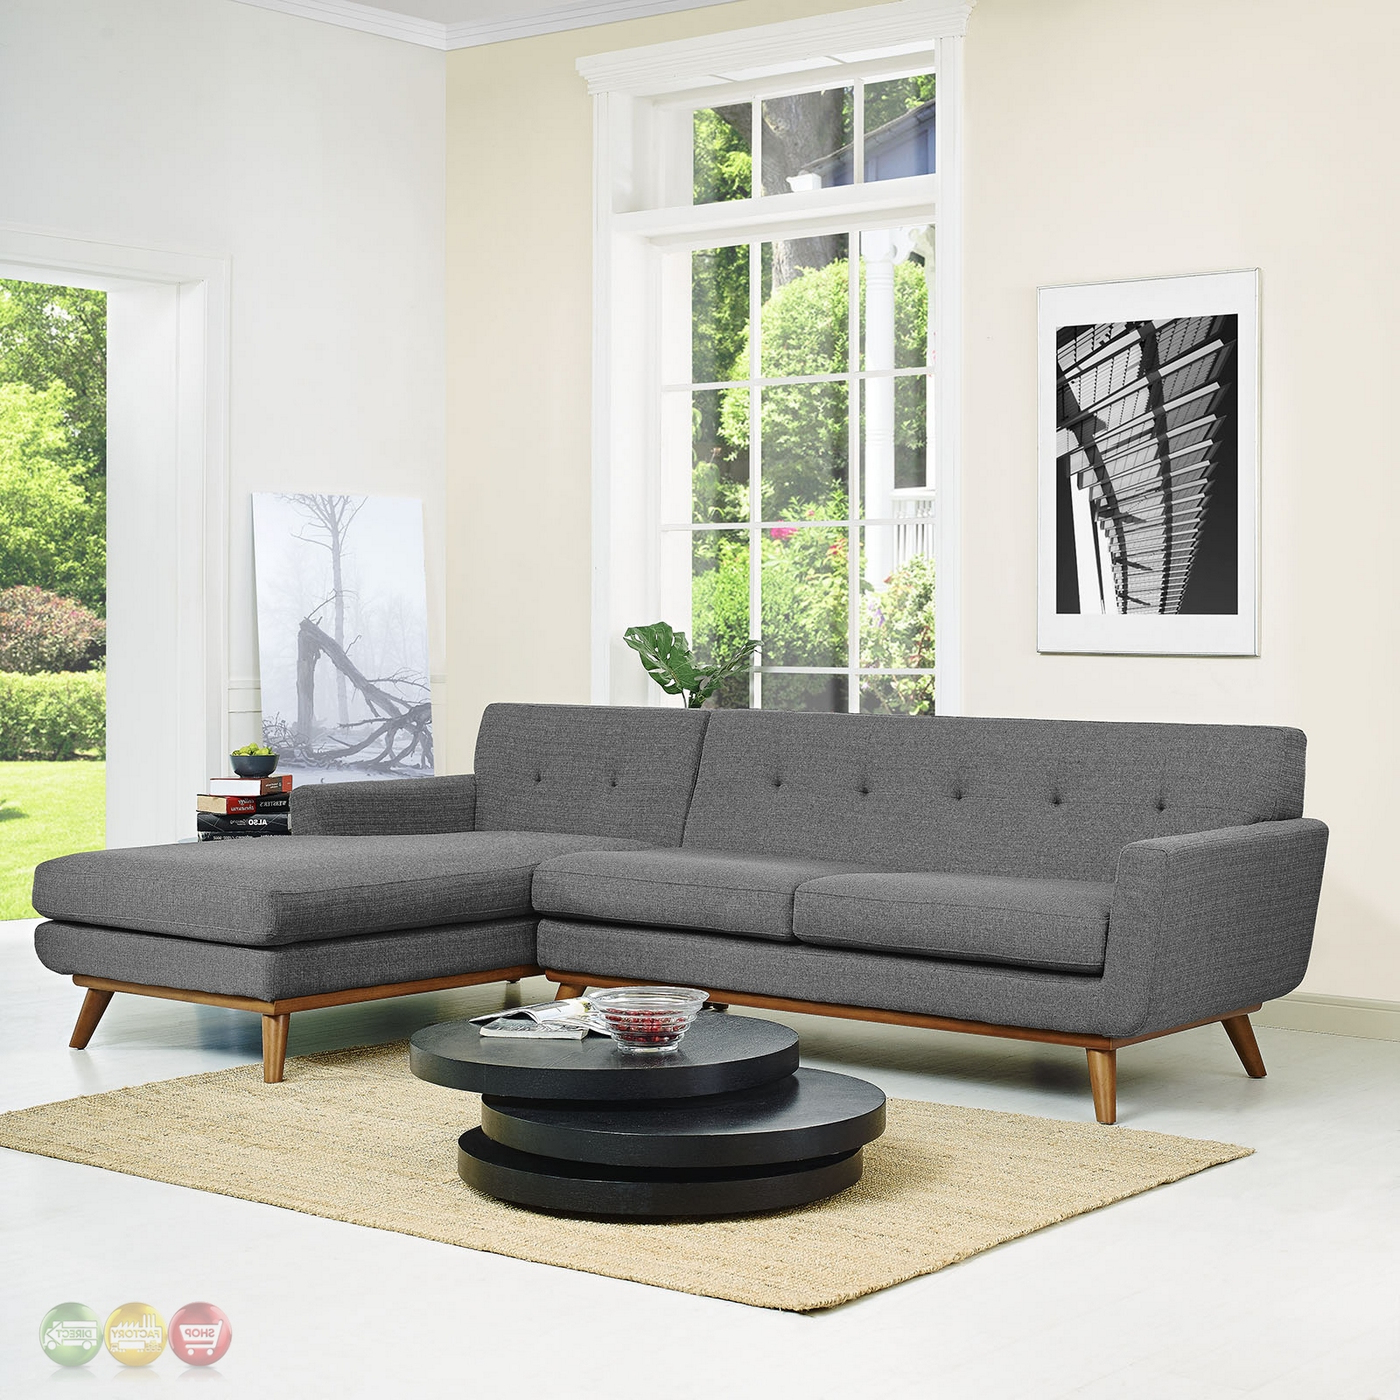 Widely Used Alani Mid Century Modern Sectional Sofas With Chaise With Regard To Mid Century Modern Engage Right Facing Chaise Sectional (View 20 of 25)